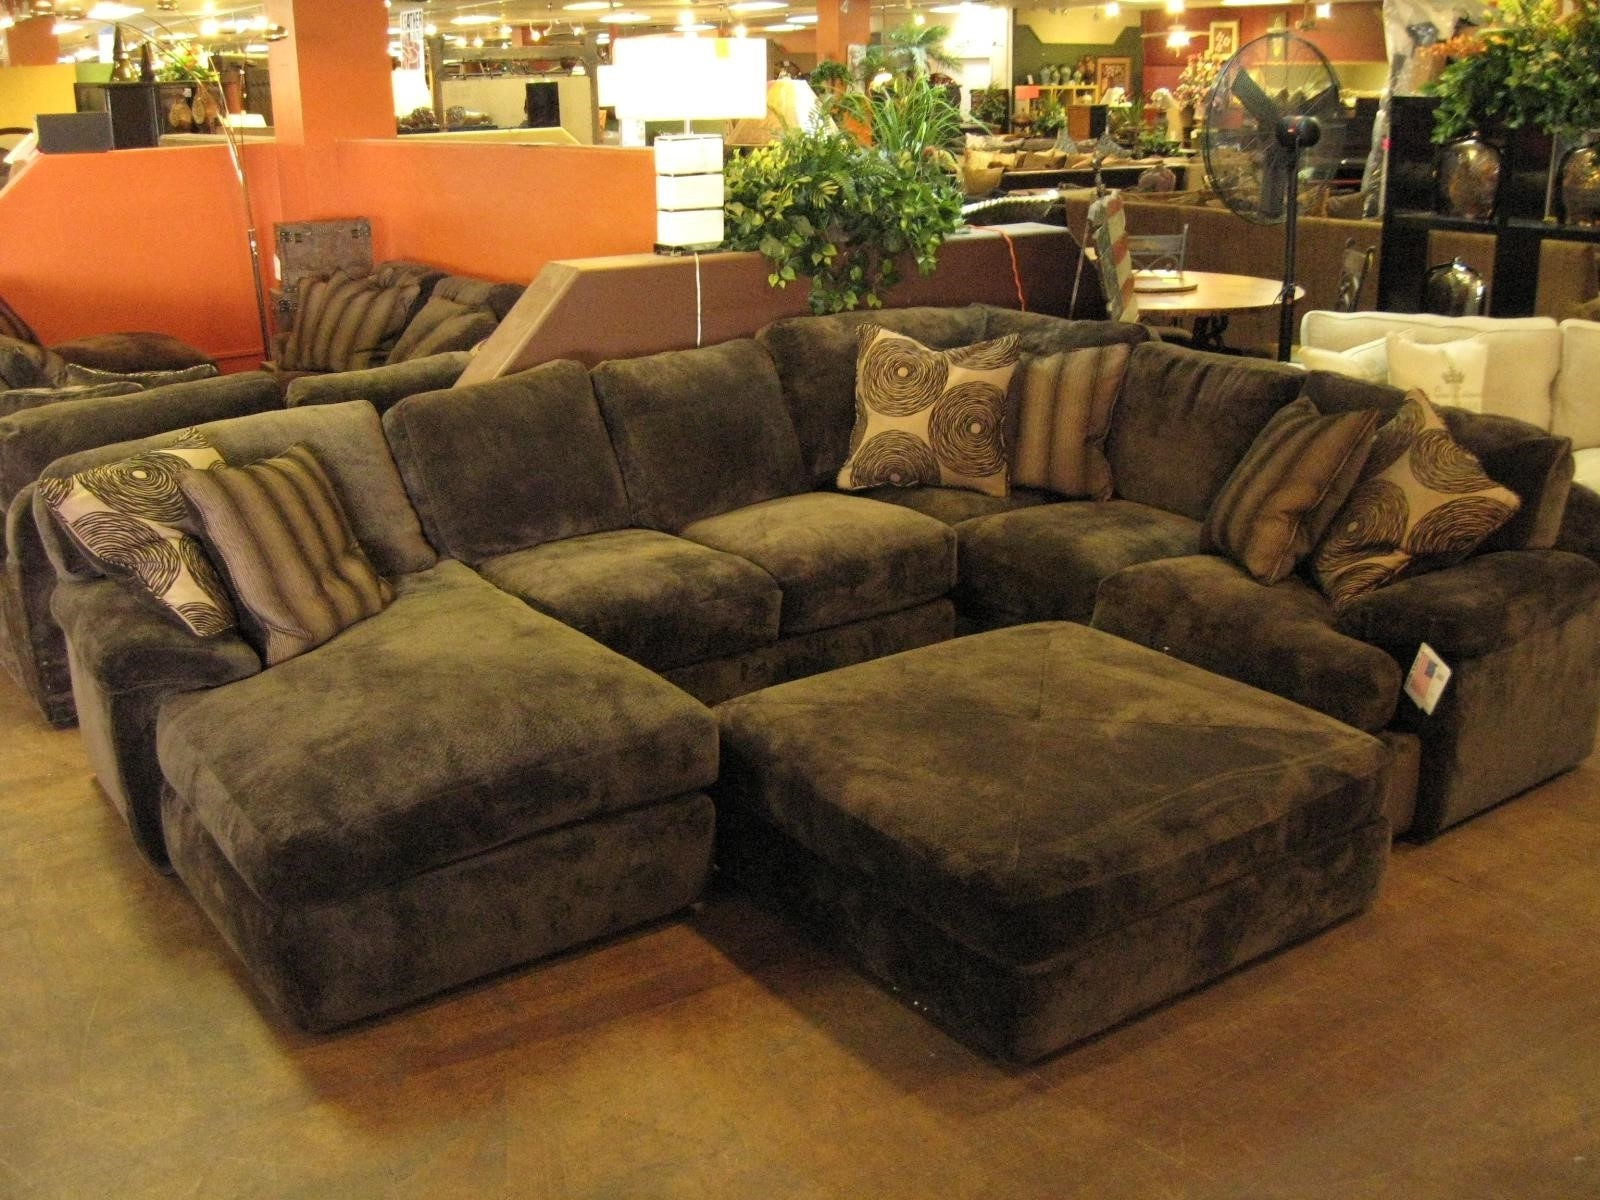 Sofas Marvelous Brown Sectional Couch Cheap For Large Sofa With Inside Trendy Sofas With Large Ottoman (View 7 of 15)